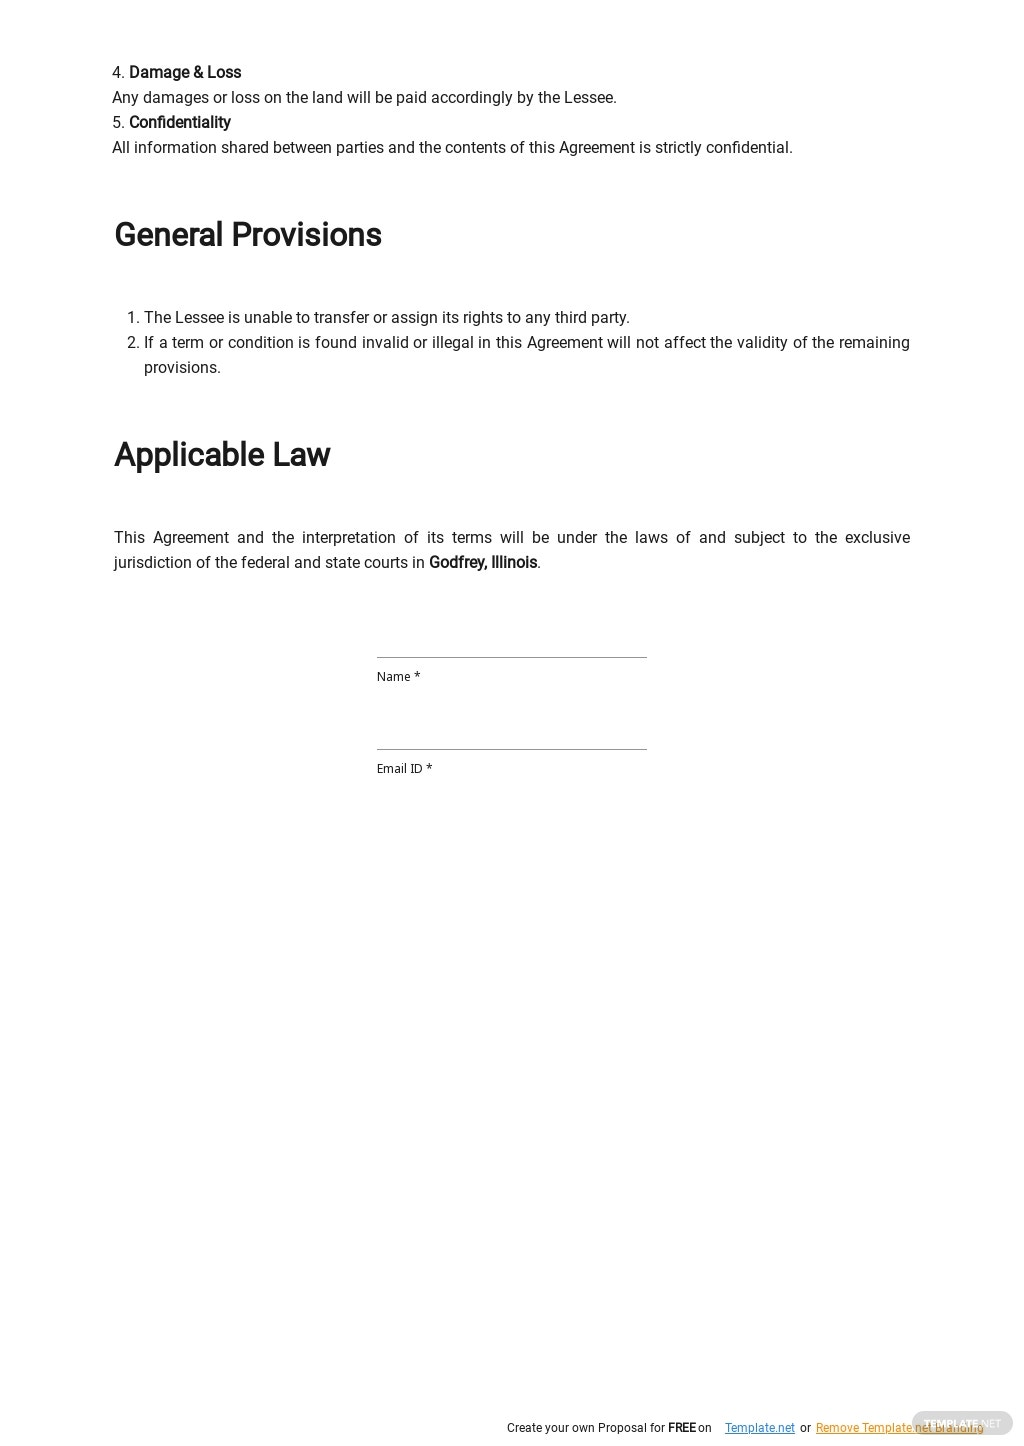 Sample Land Lease Agreement Template 2.jpe